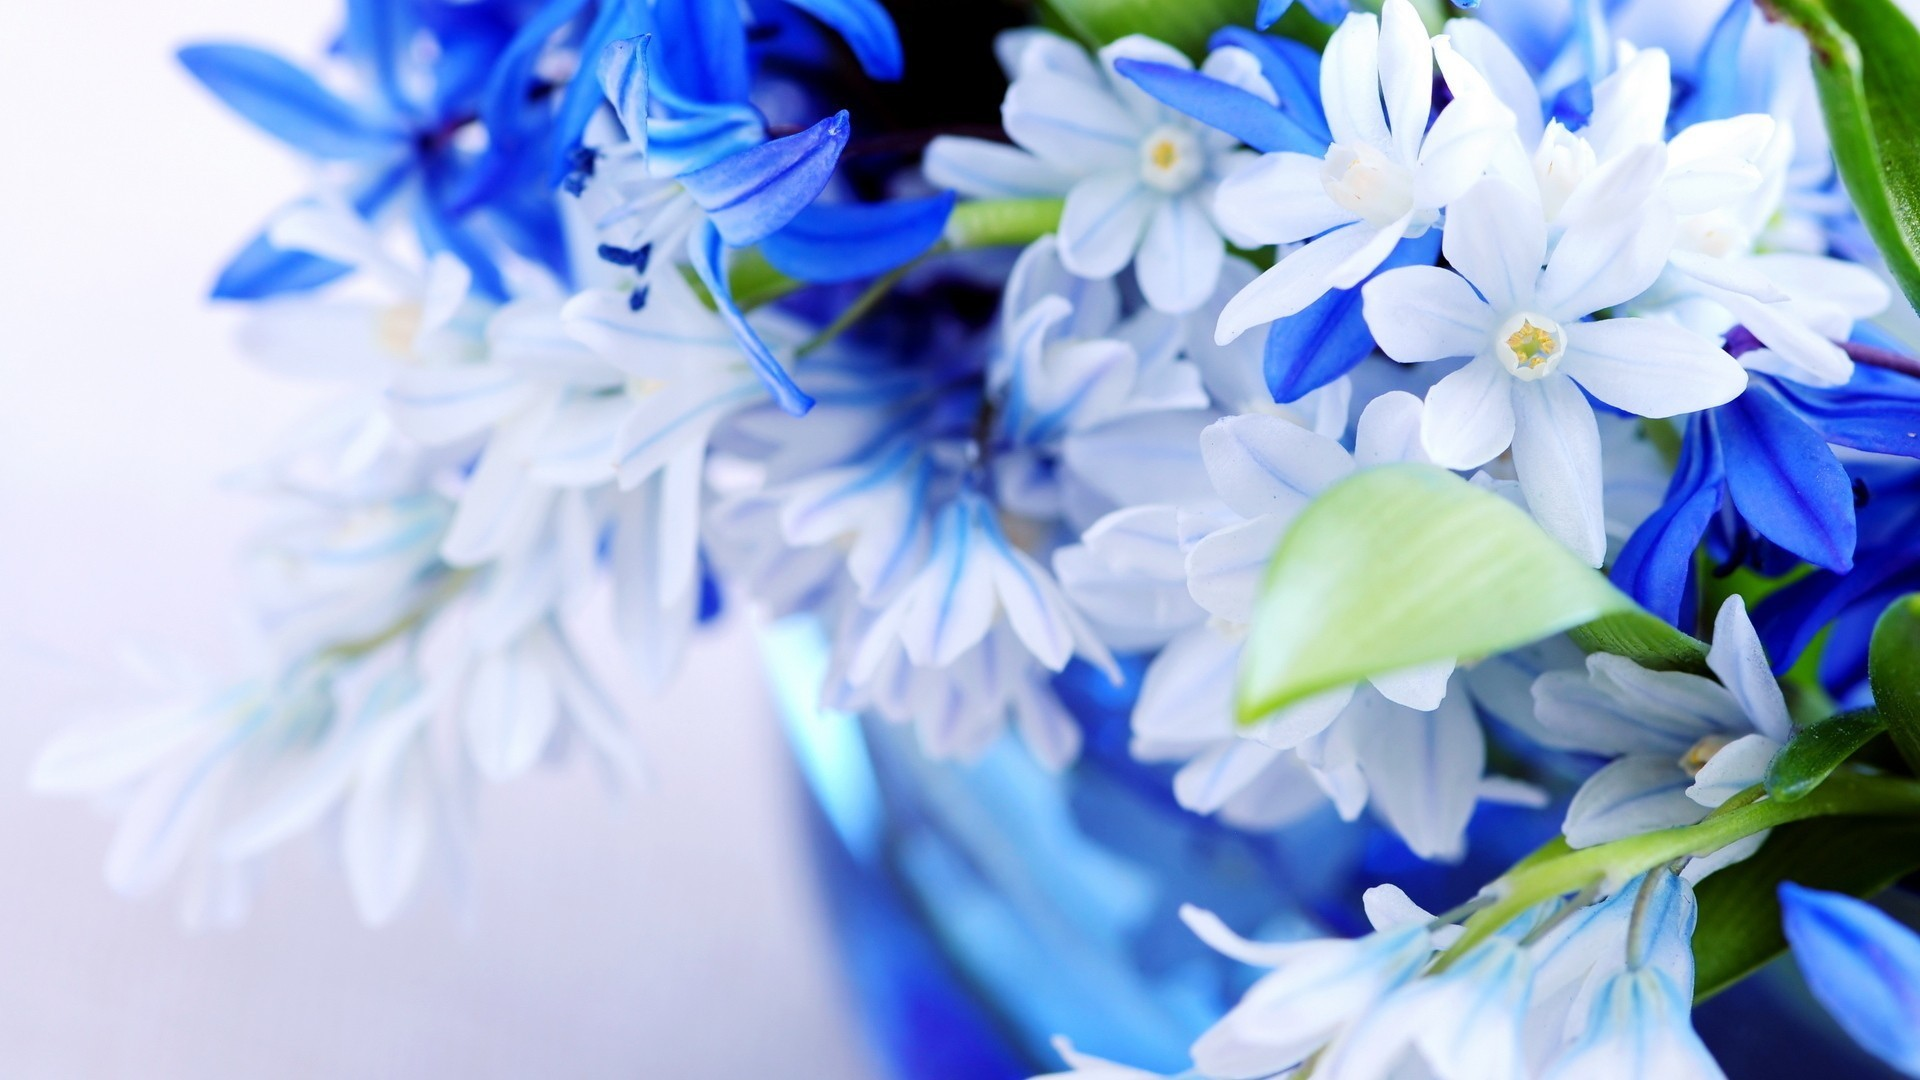 Res: 1920x1080, Marvelous blue flowers wallpaper